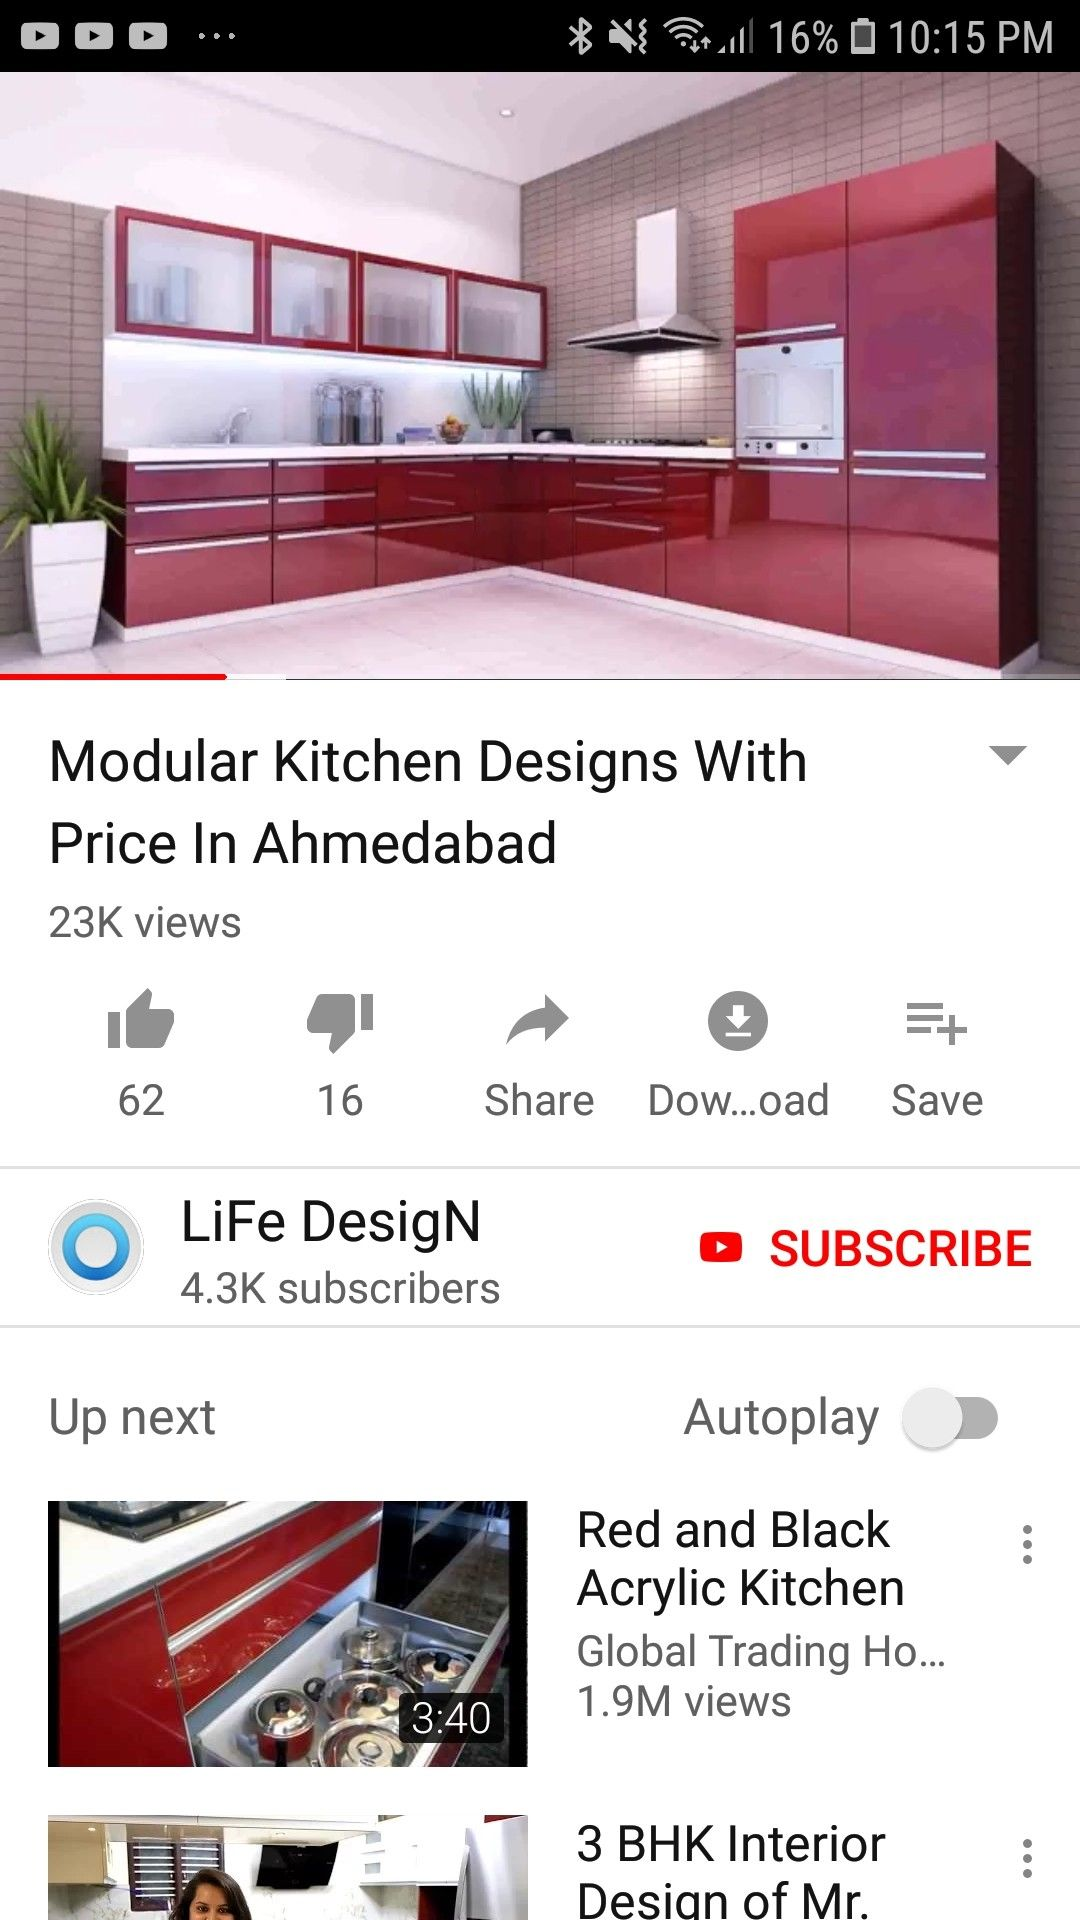 Pin By Ashritha Varaganti On Kitchen And Pantry Life Design Design Kitchen Design